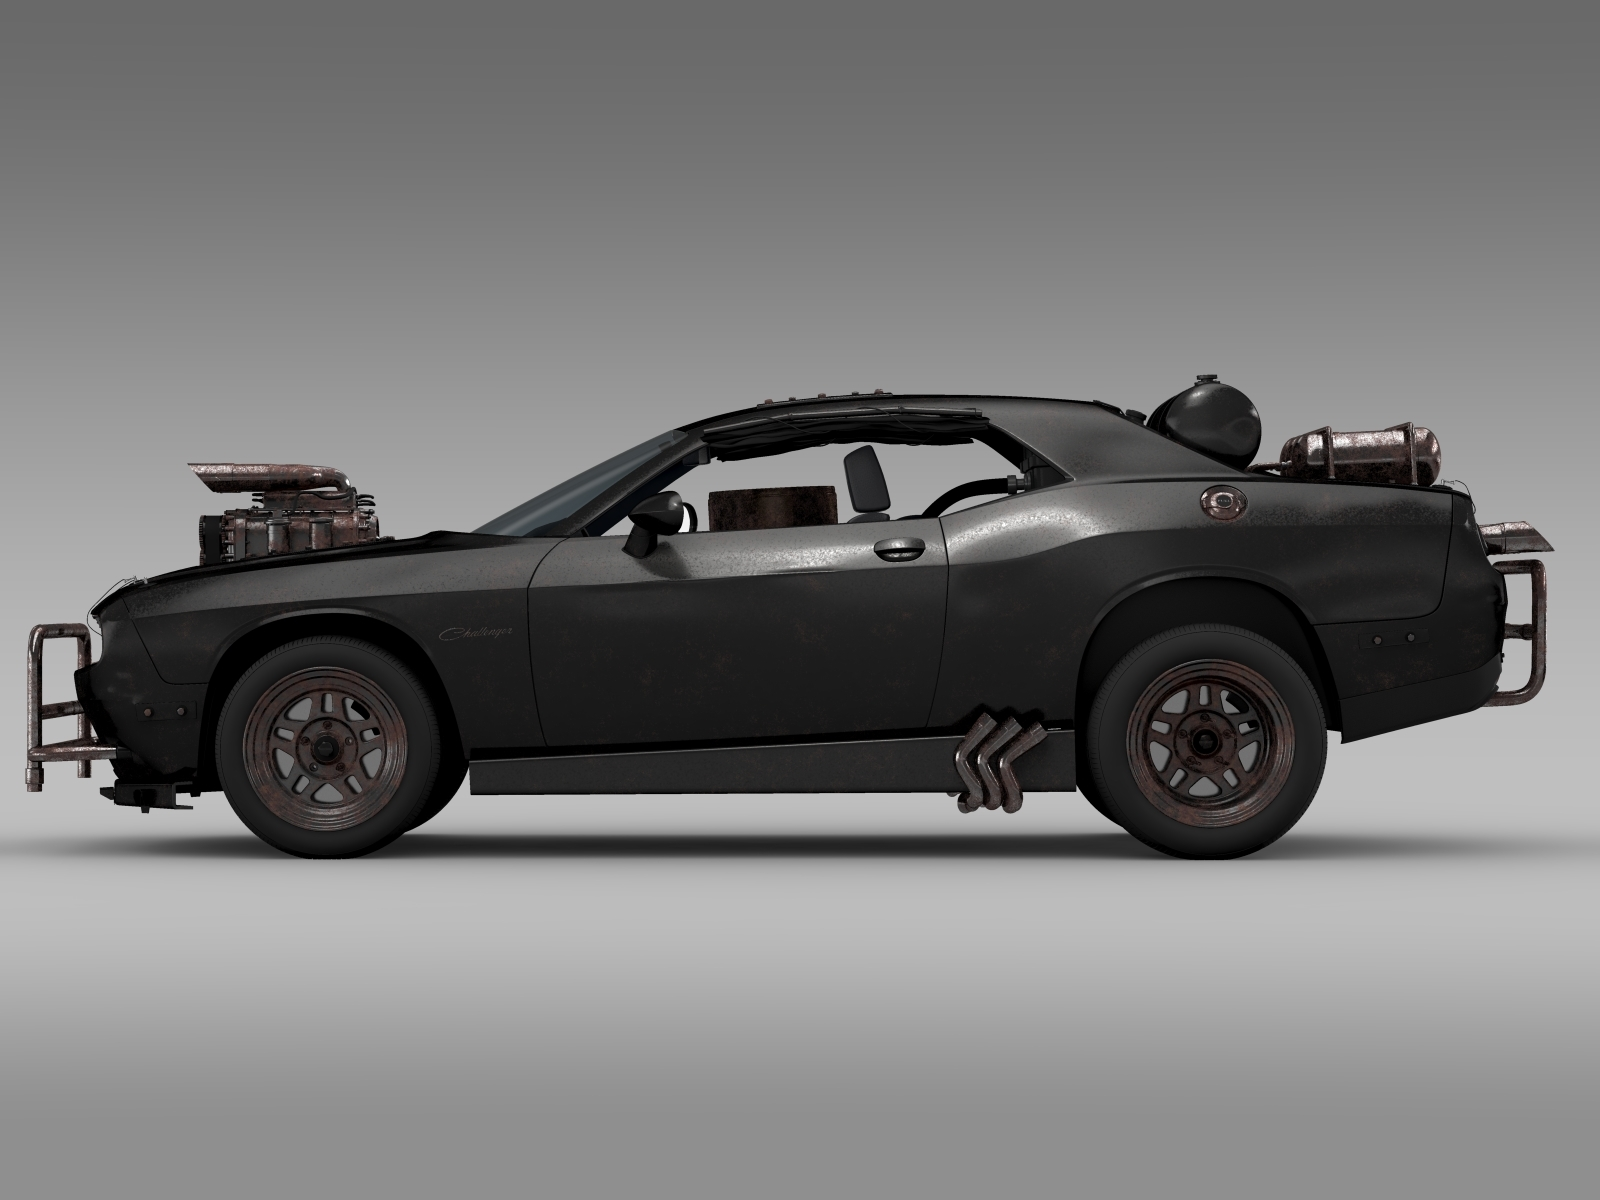 Mad Max Dodge Challenger >> Mad Max Fight Interceptor Dodge Challenger 2015 By Creator 3d 3docean